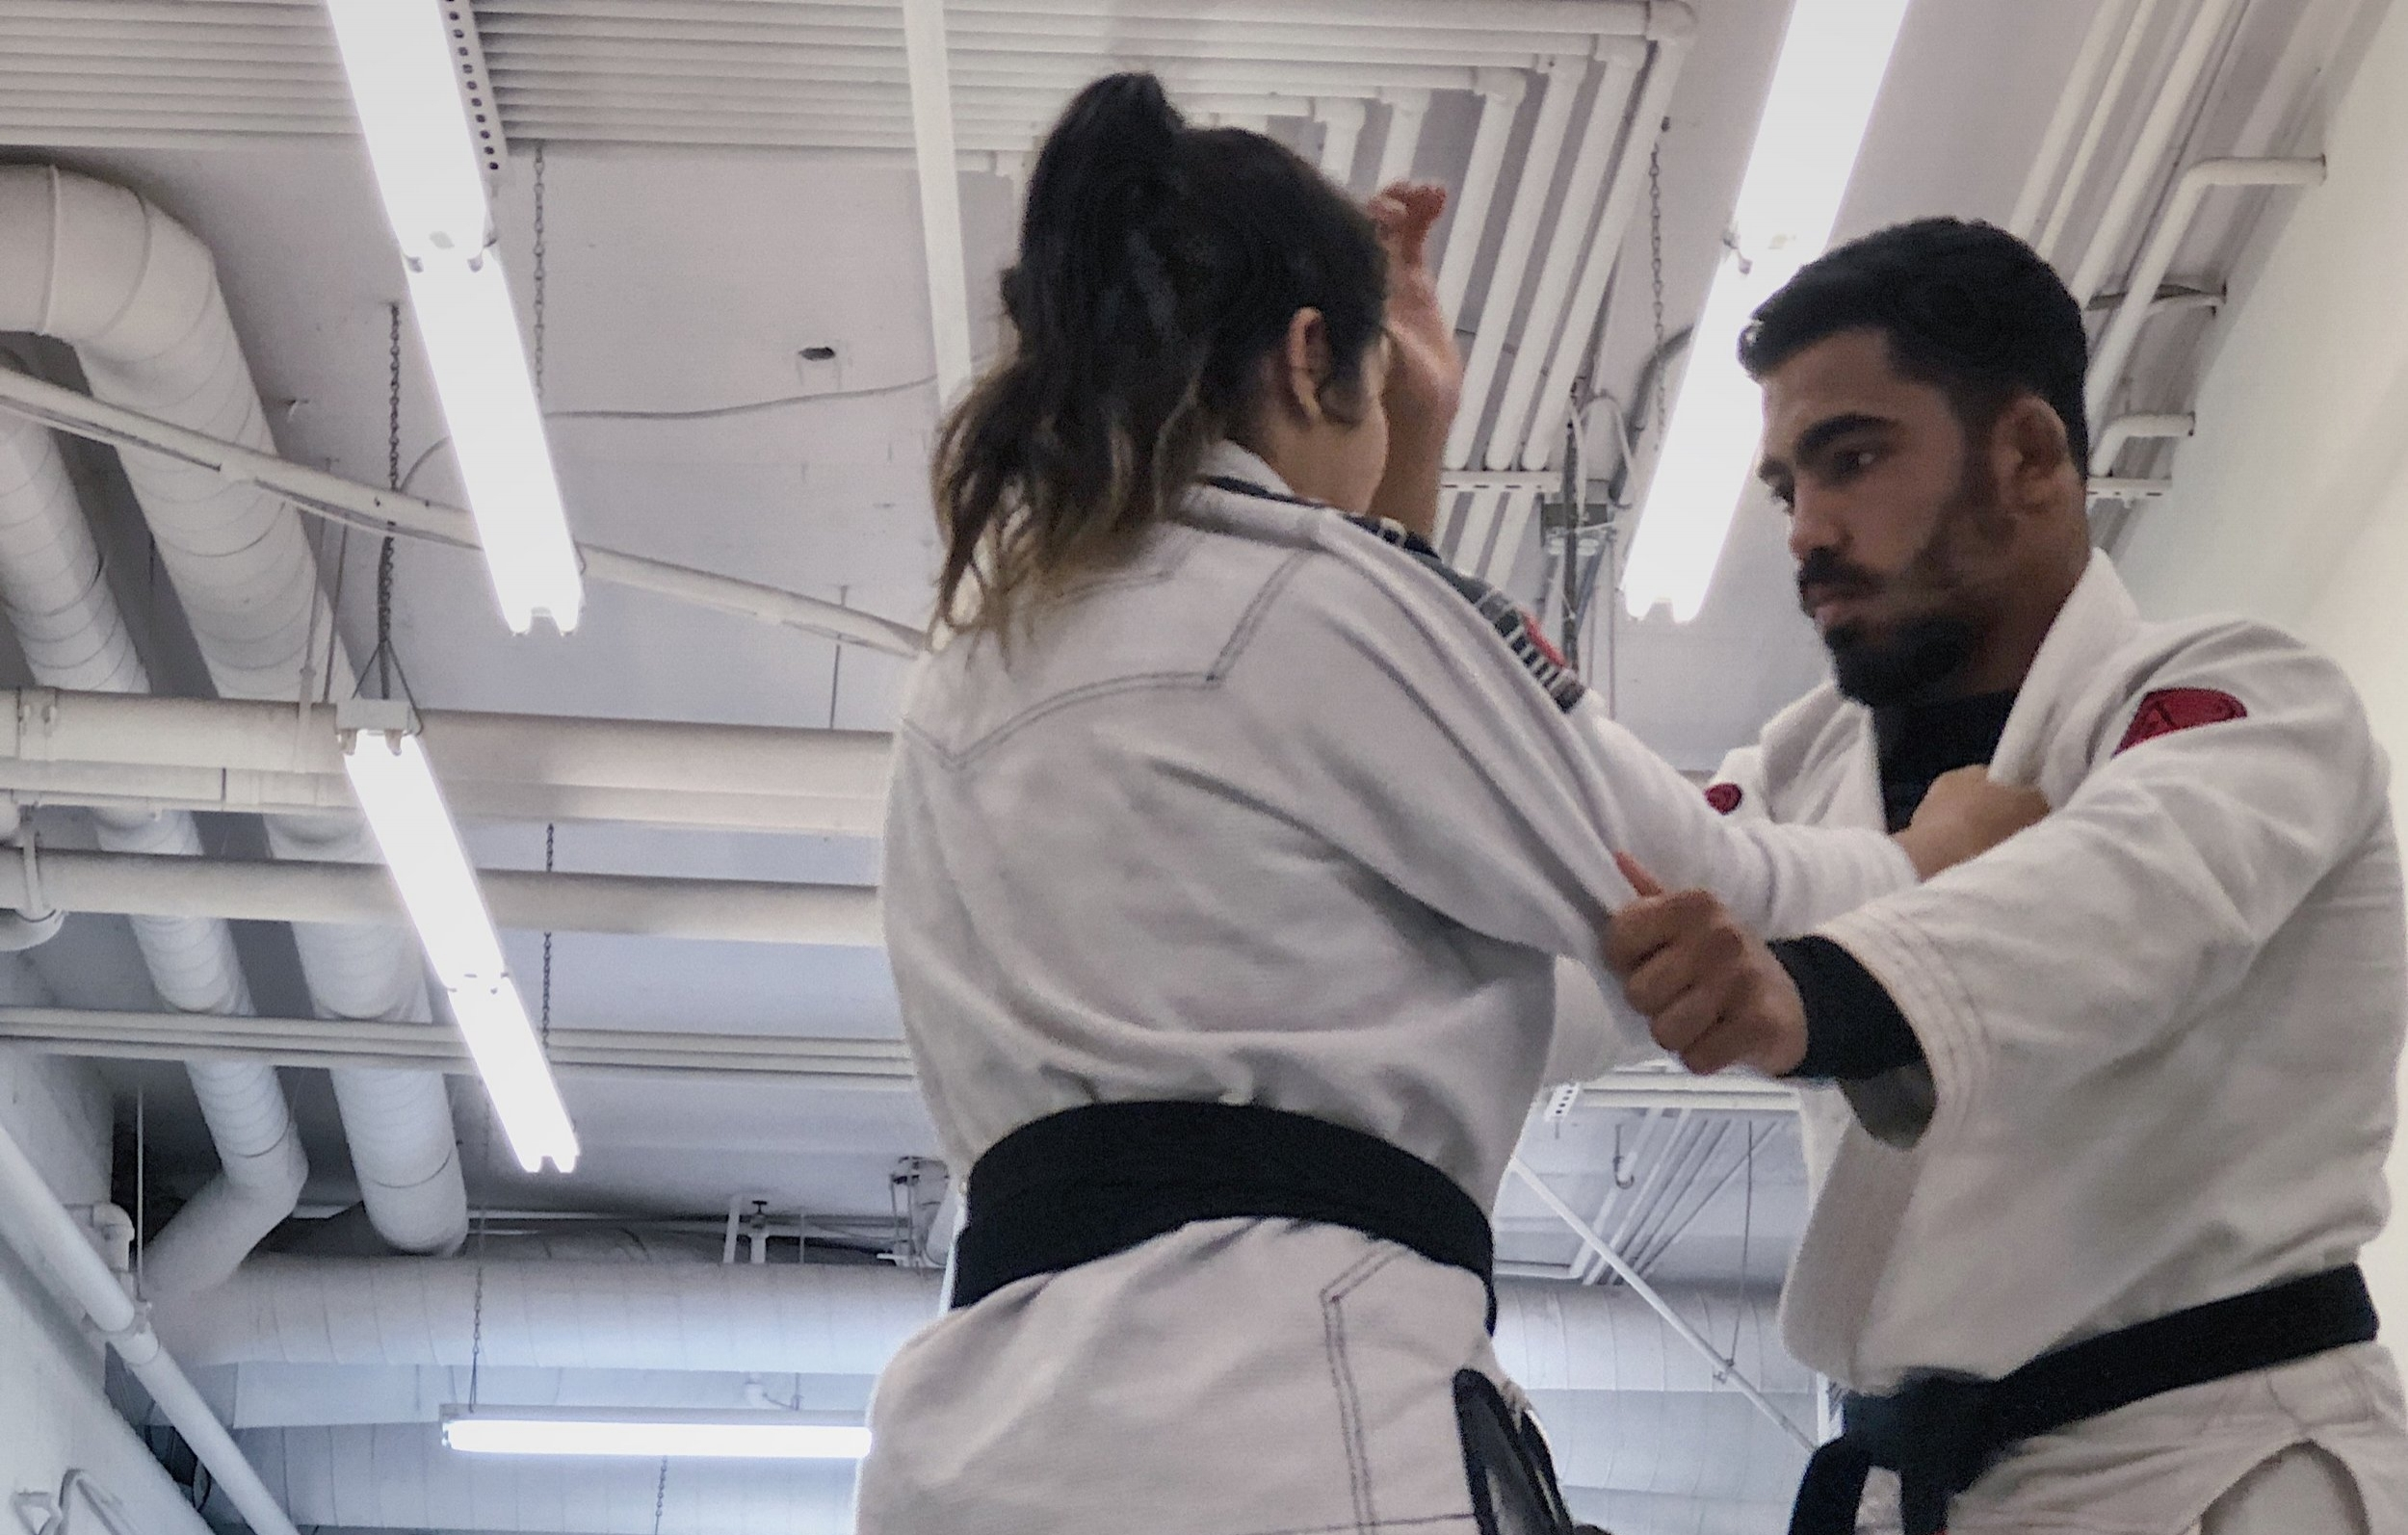 Jiu Jitsu and Self Defense training for Men and Women of all ages and levels in the Woodland Hills, Encino, Calabasas, Canoga Park and Tarzana area.